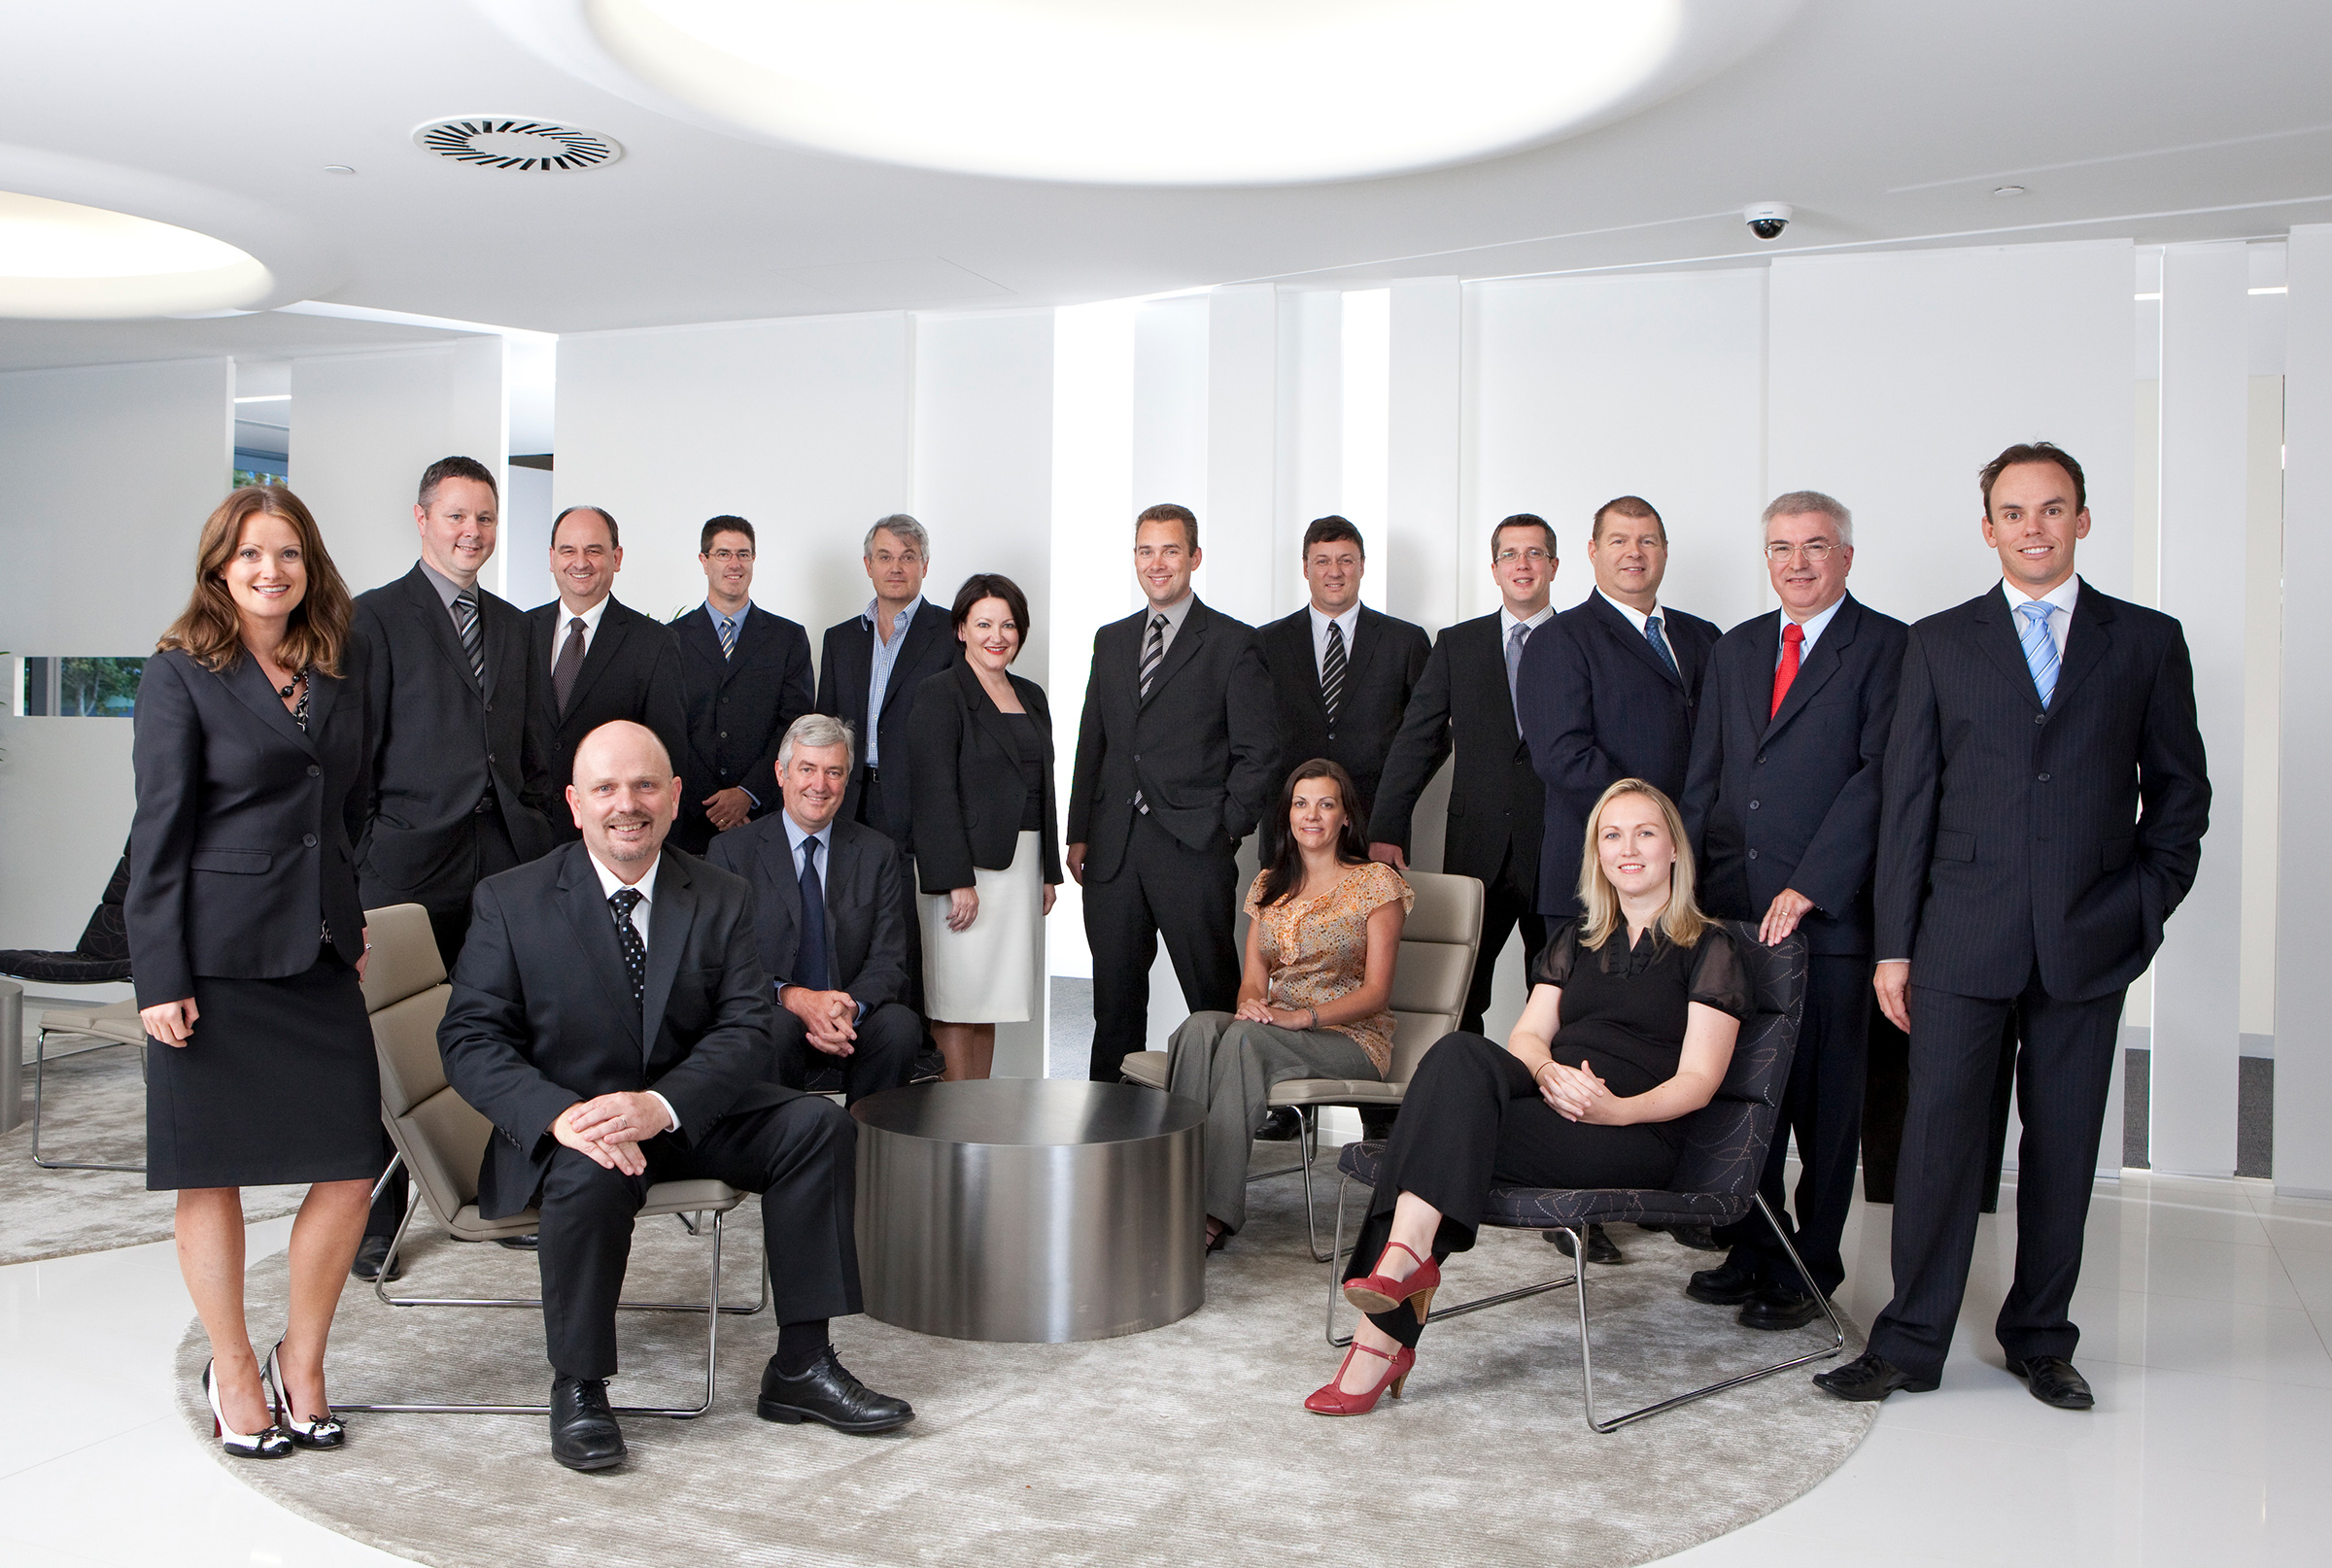 Corporate location casual staff group shot photography Alcatel office reception background